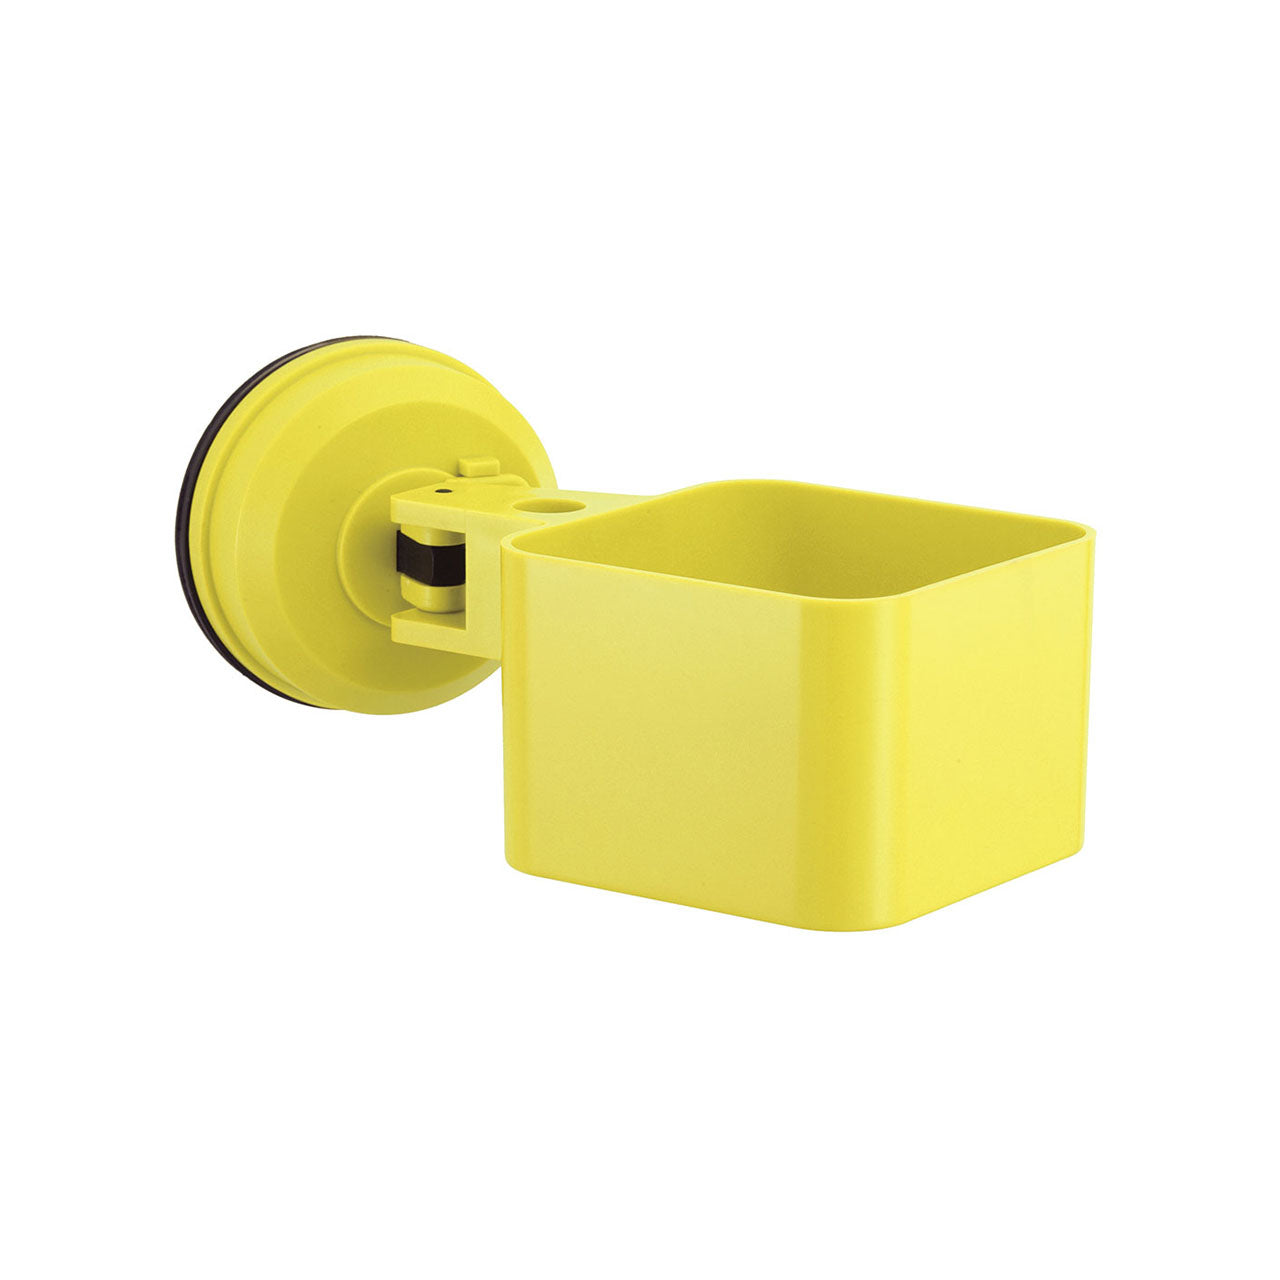 D4 DIANA MULTI-FUNCTION HOLDER [Colour: Yellow]